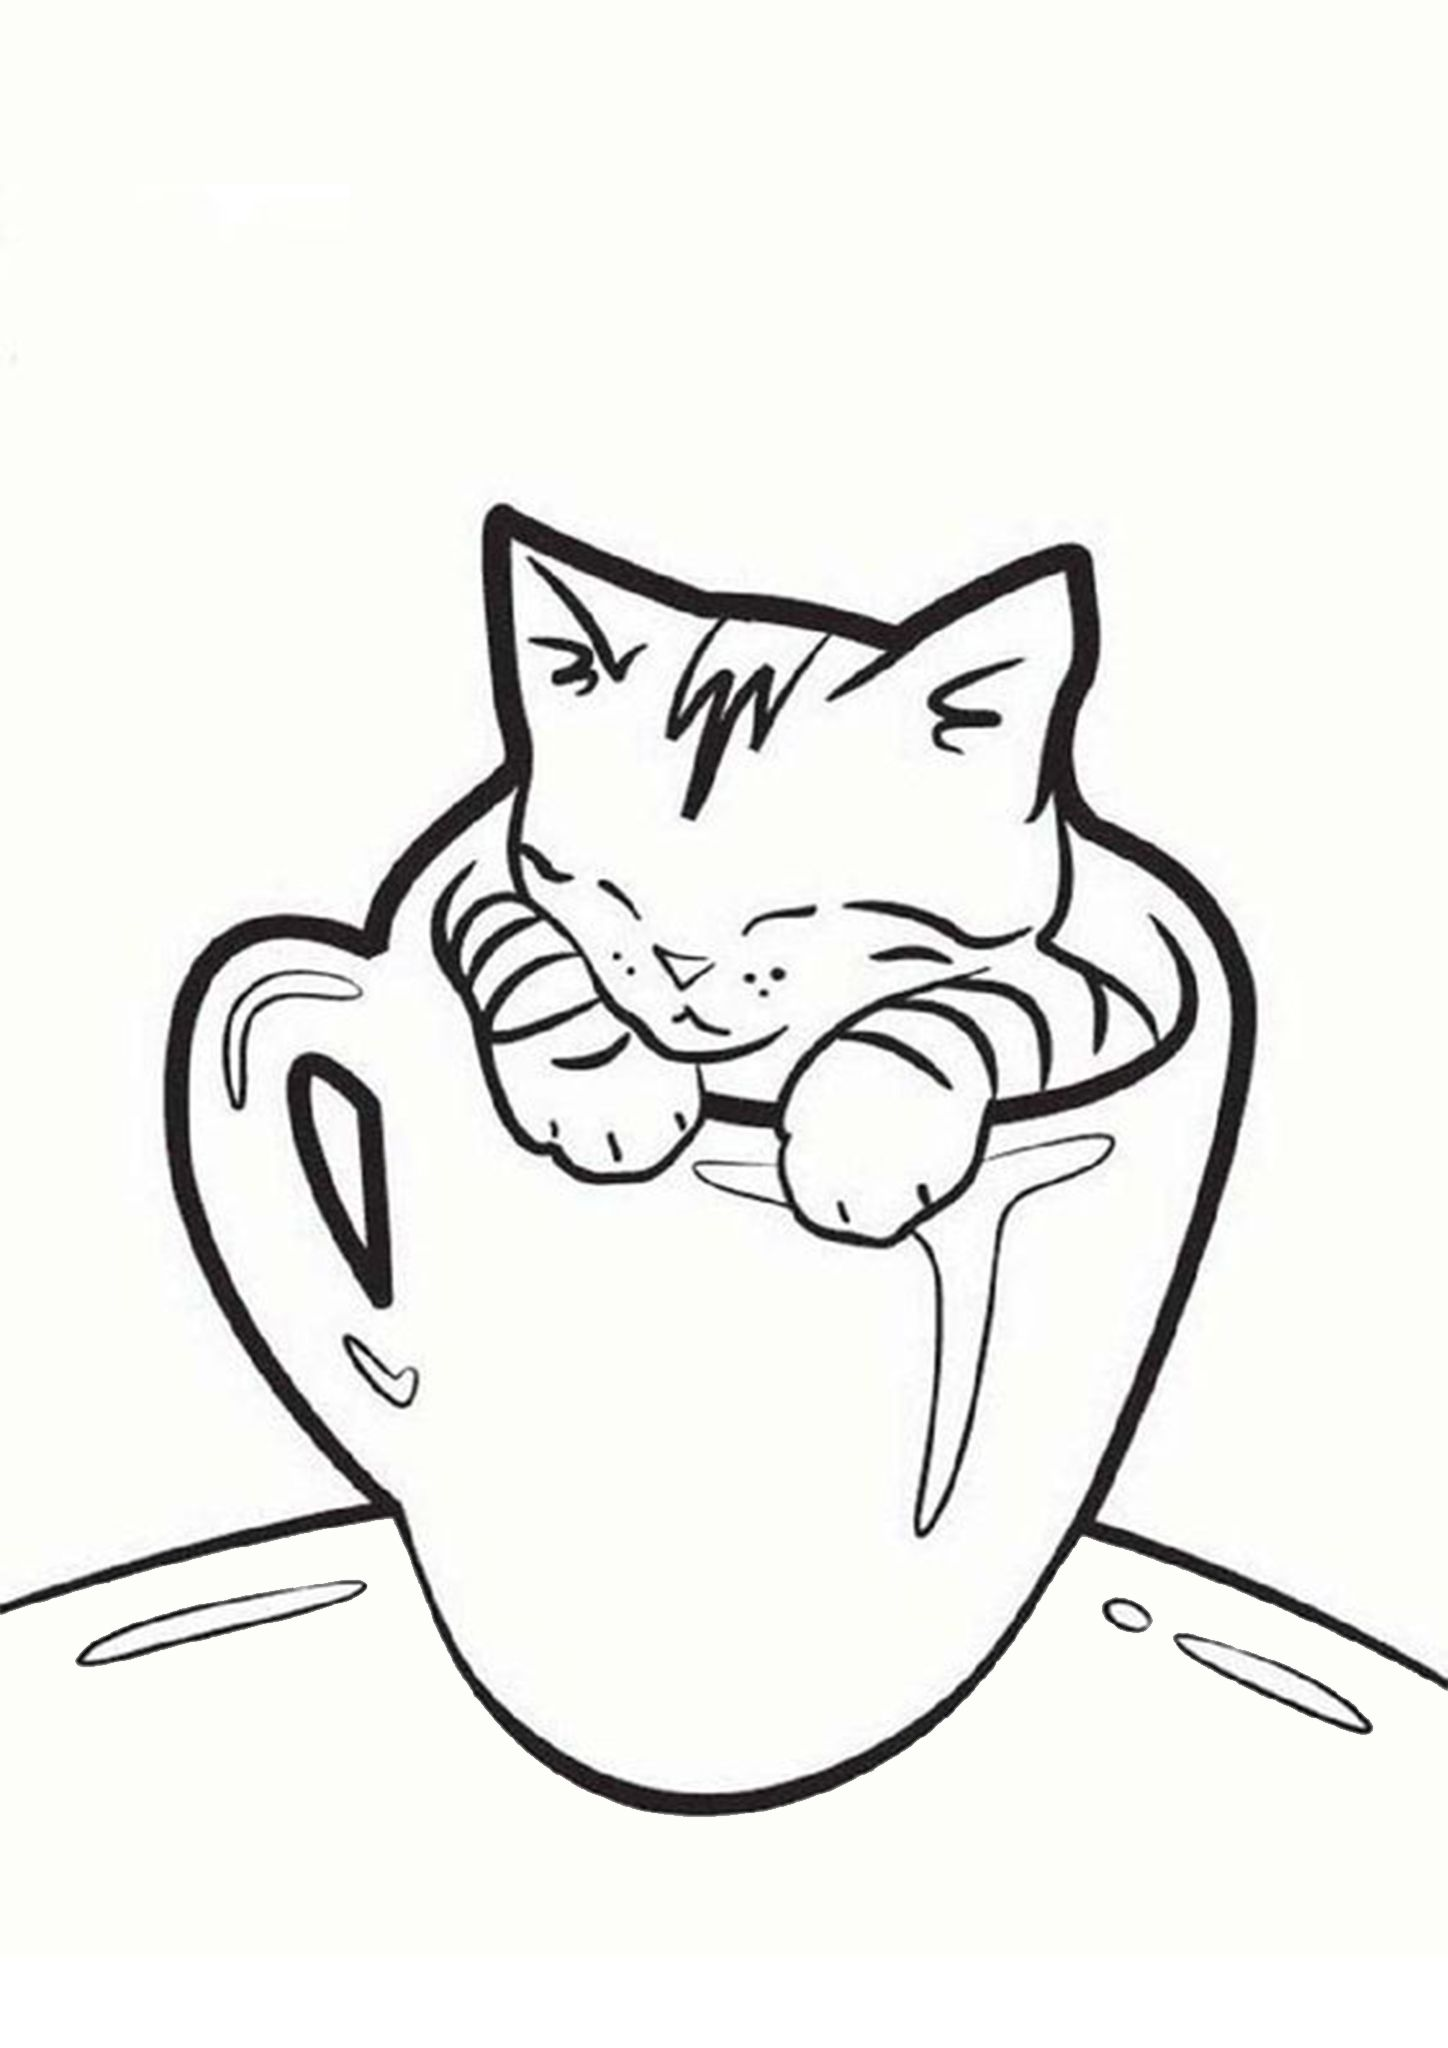 Free Easy To Print Kitten Coloring Pages Simple Cat Drawing Cat Coloring Page Kittens Coloring